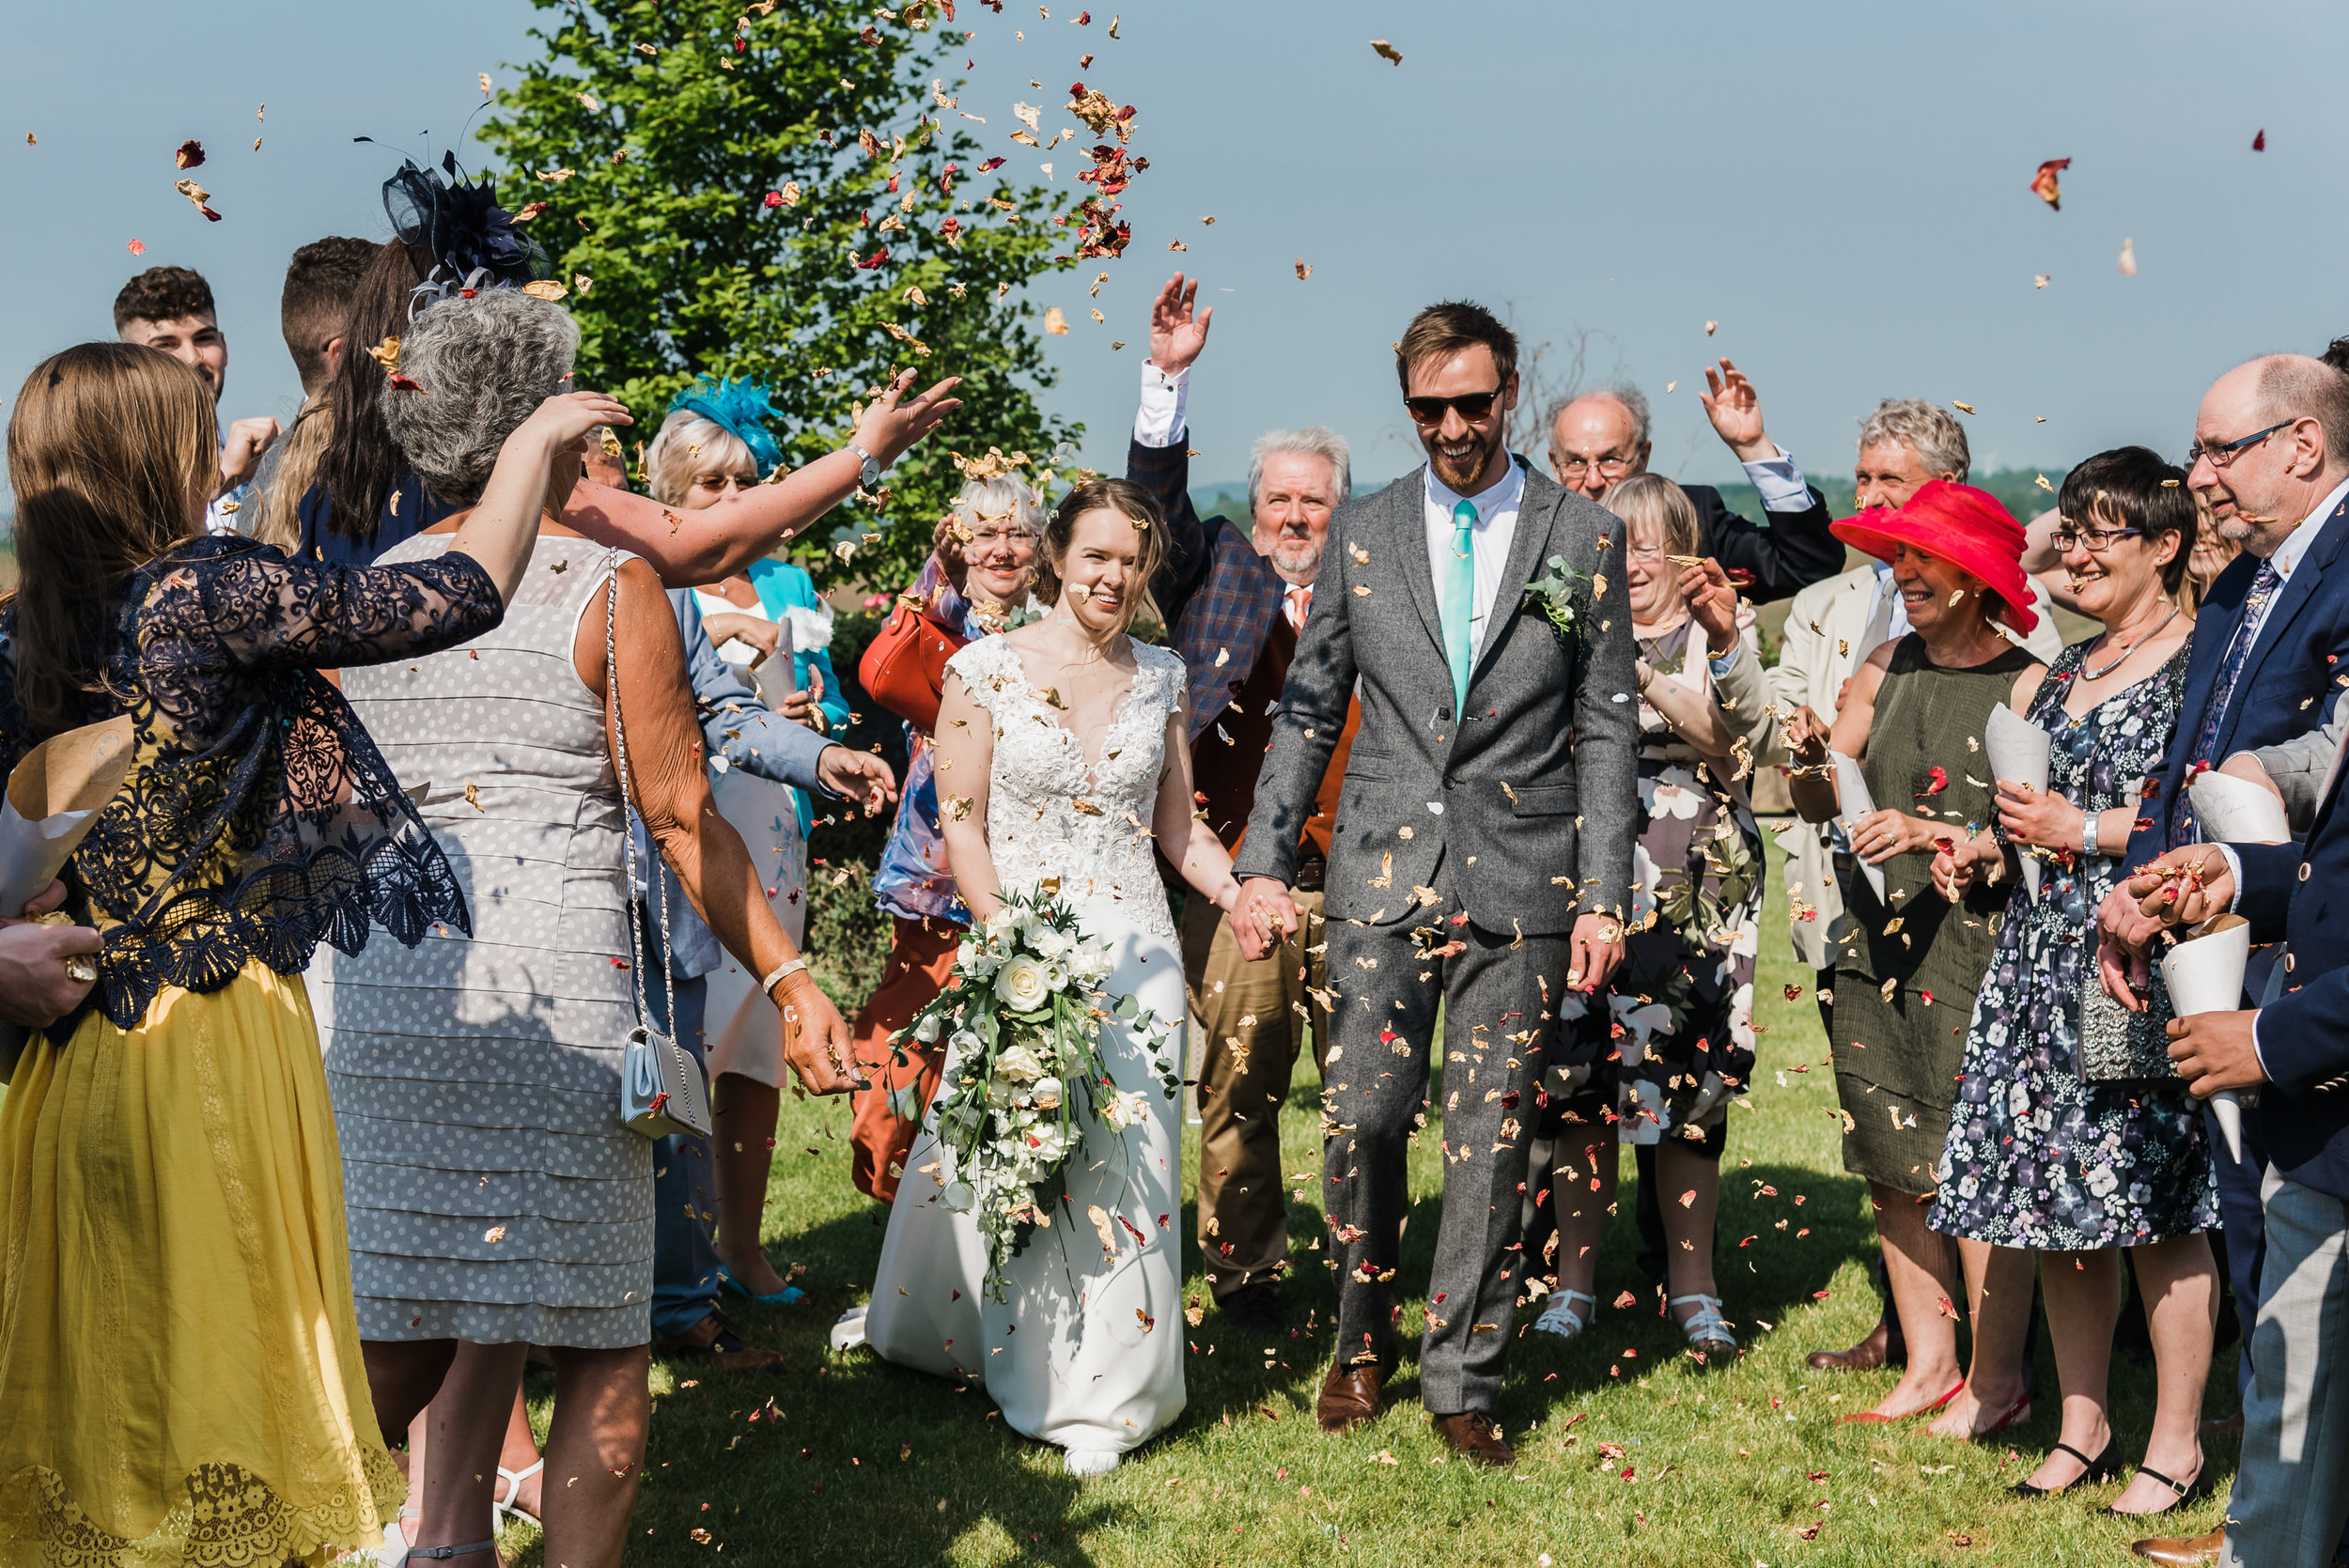 Stylish wedding couple enjoy confetti with dry petals in the summer sunshine on their wedding day in the Midlands.